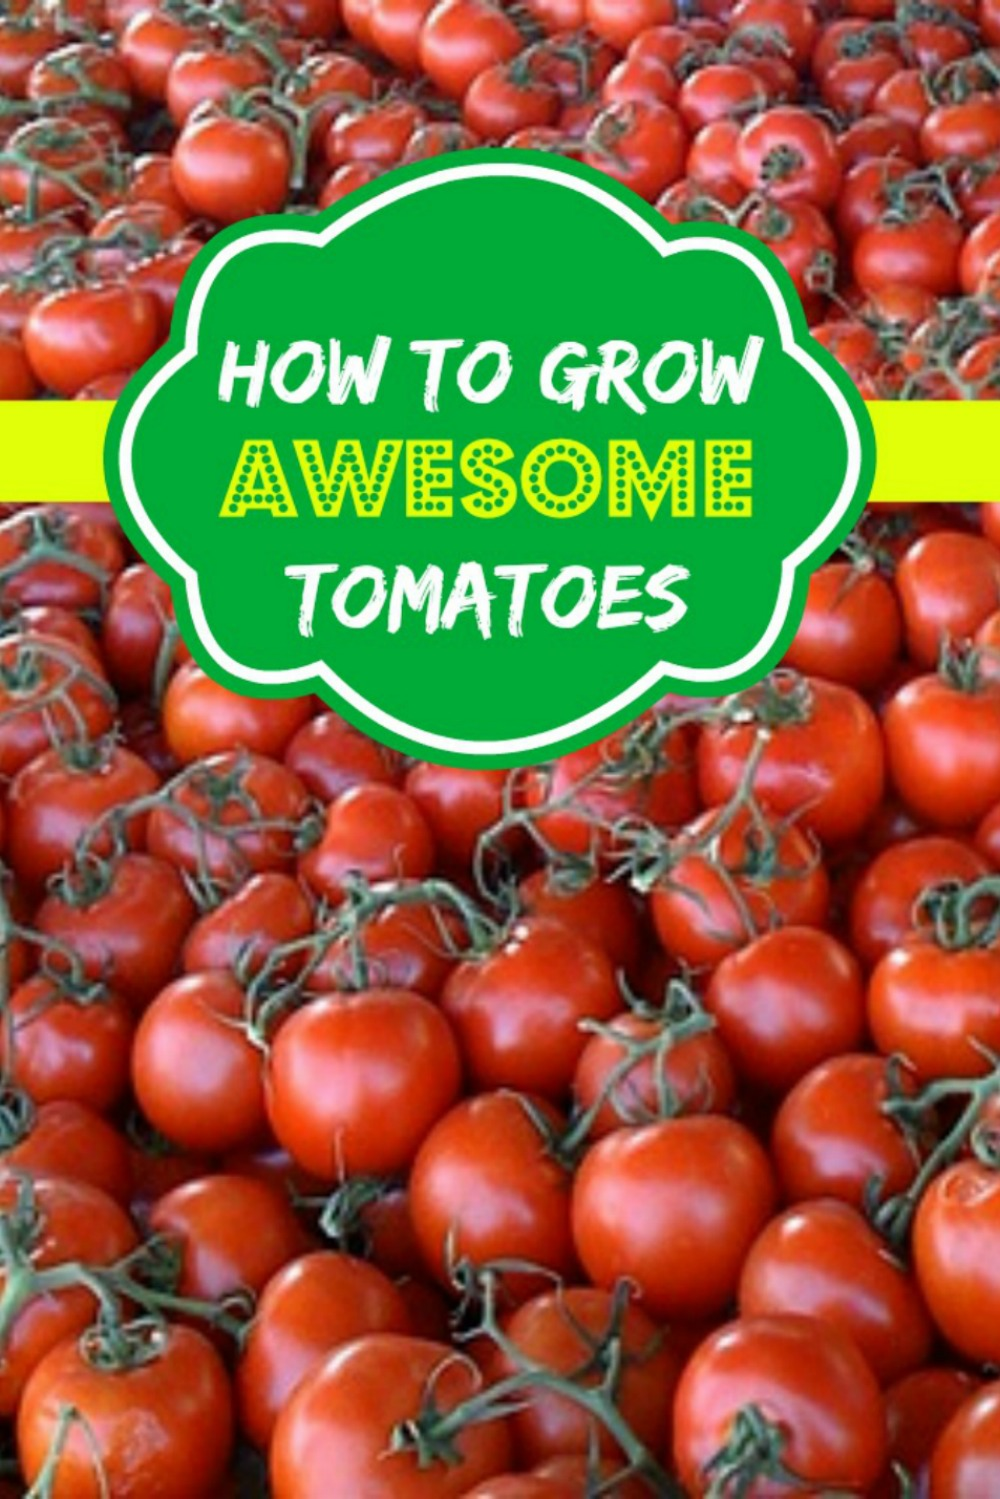 How To Grow Awesome Tomatoes2